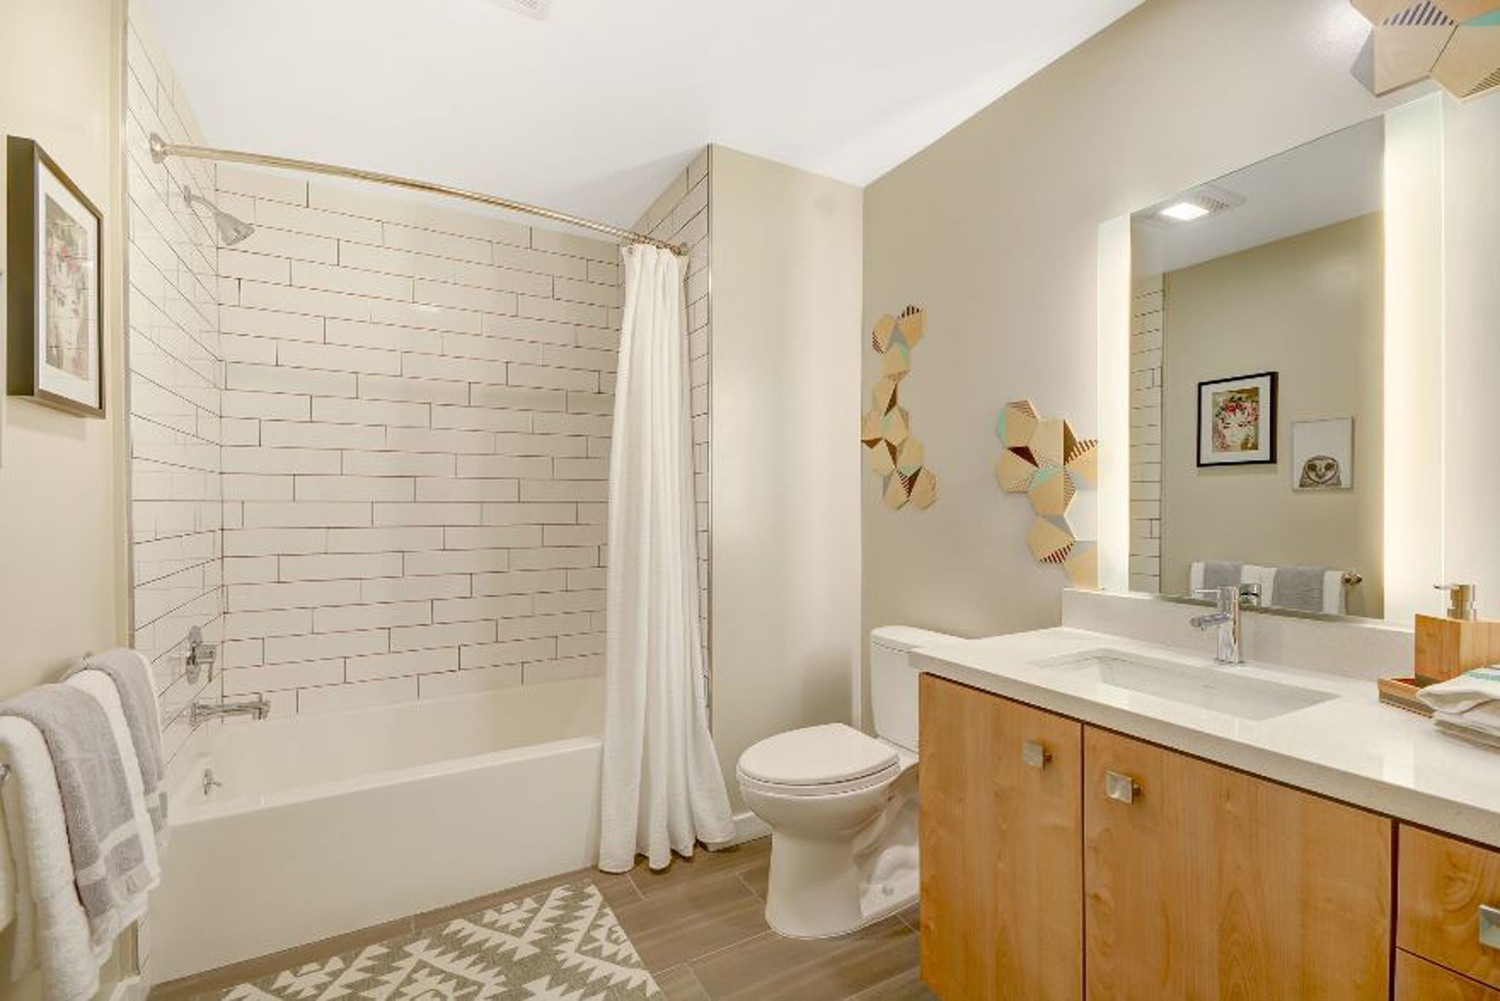 A bathroom that is decorated with white walls and tiles on the floor and shower.